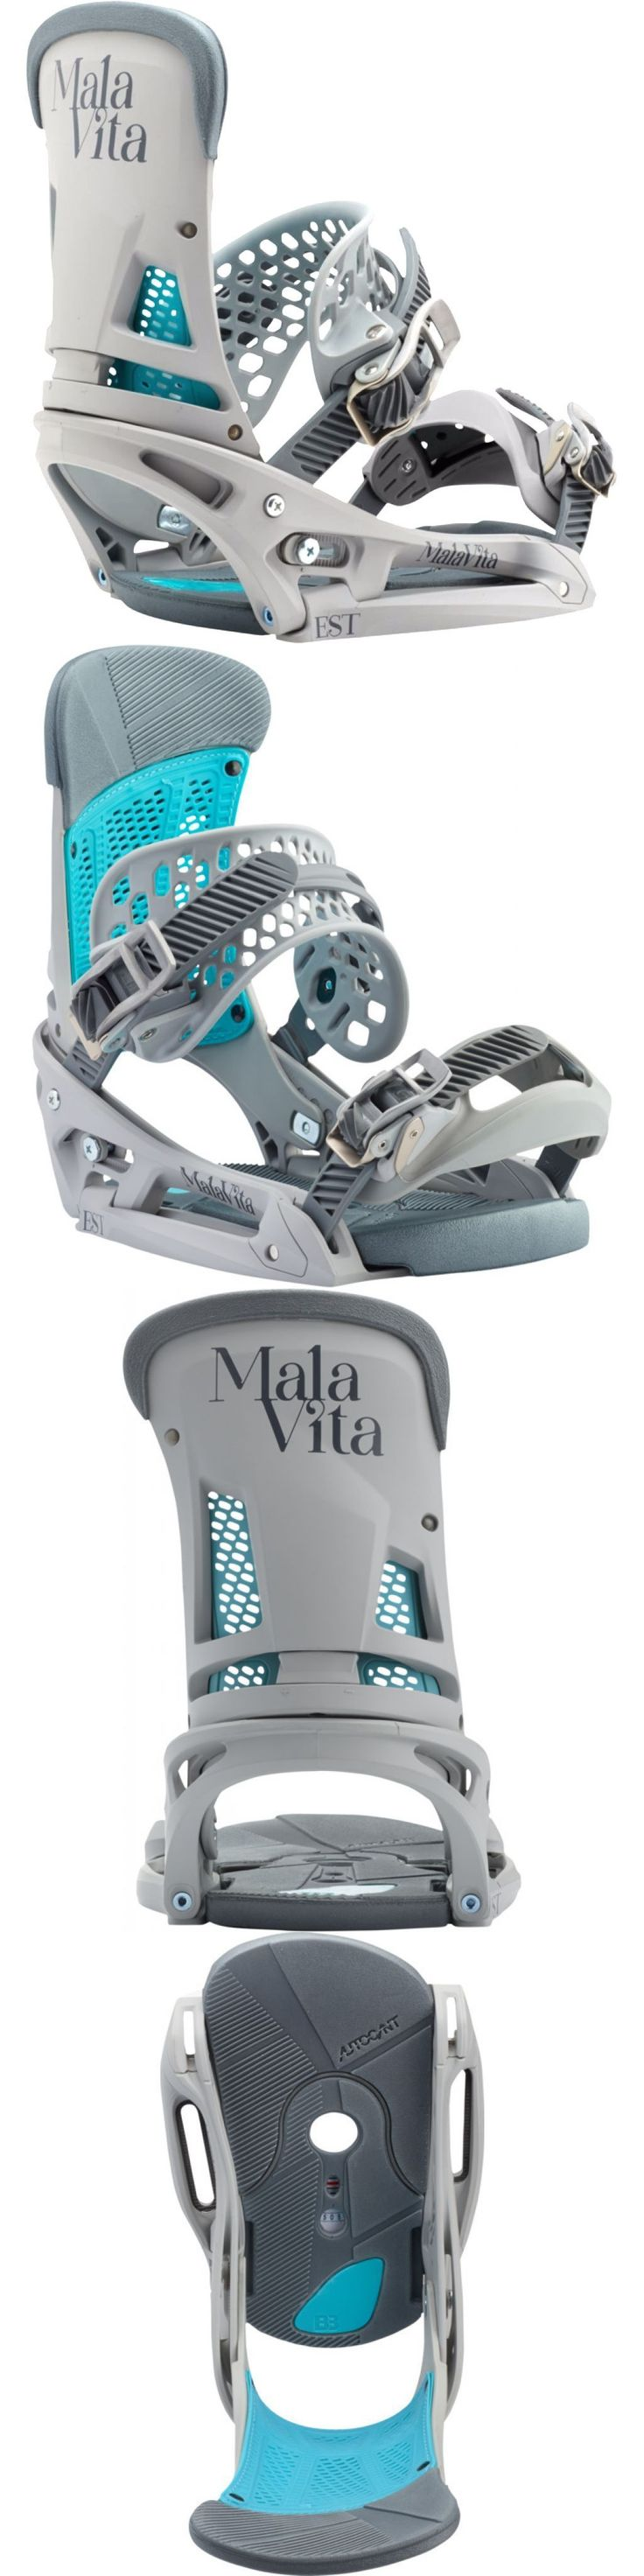 Bindings 21248: Burton - Malavita Est | 2017 - Mens Snowboard Bindings - New | Grayed Out -> BUY IT NOW ONLY: $223.95 on eBay!